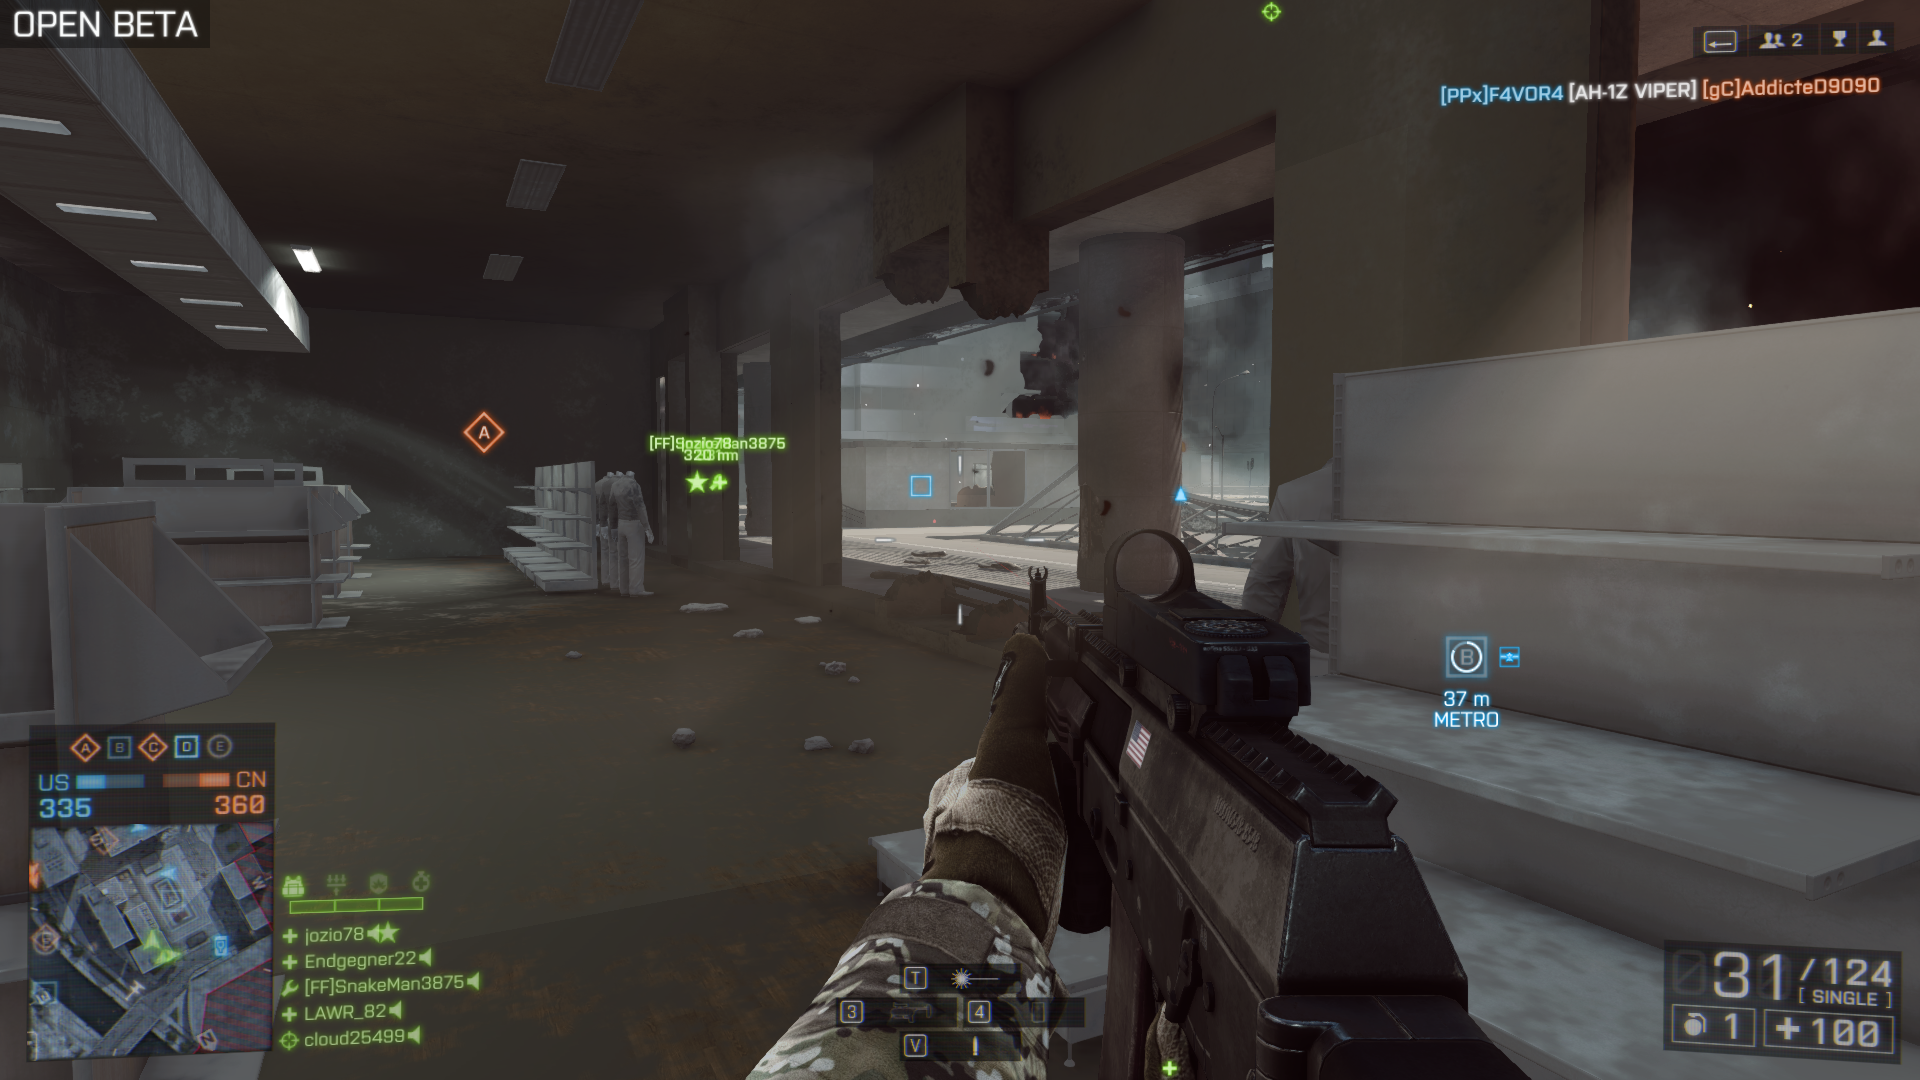 http://endgegner.fightercom.de/BF4_Screenshot/Battlefield4OpenBeta14.png